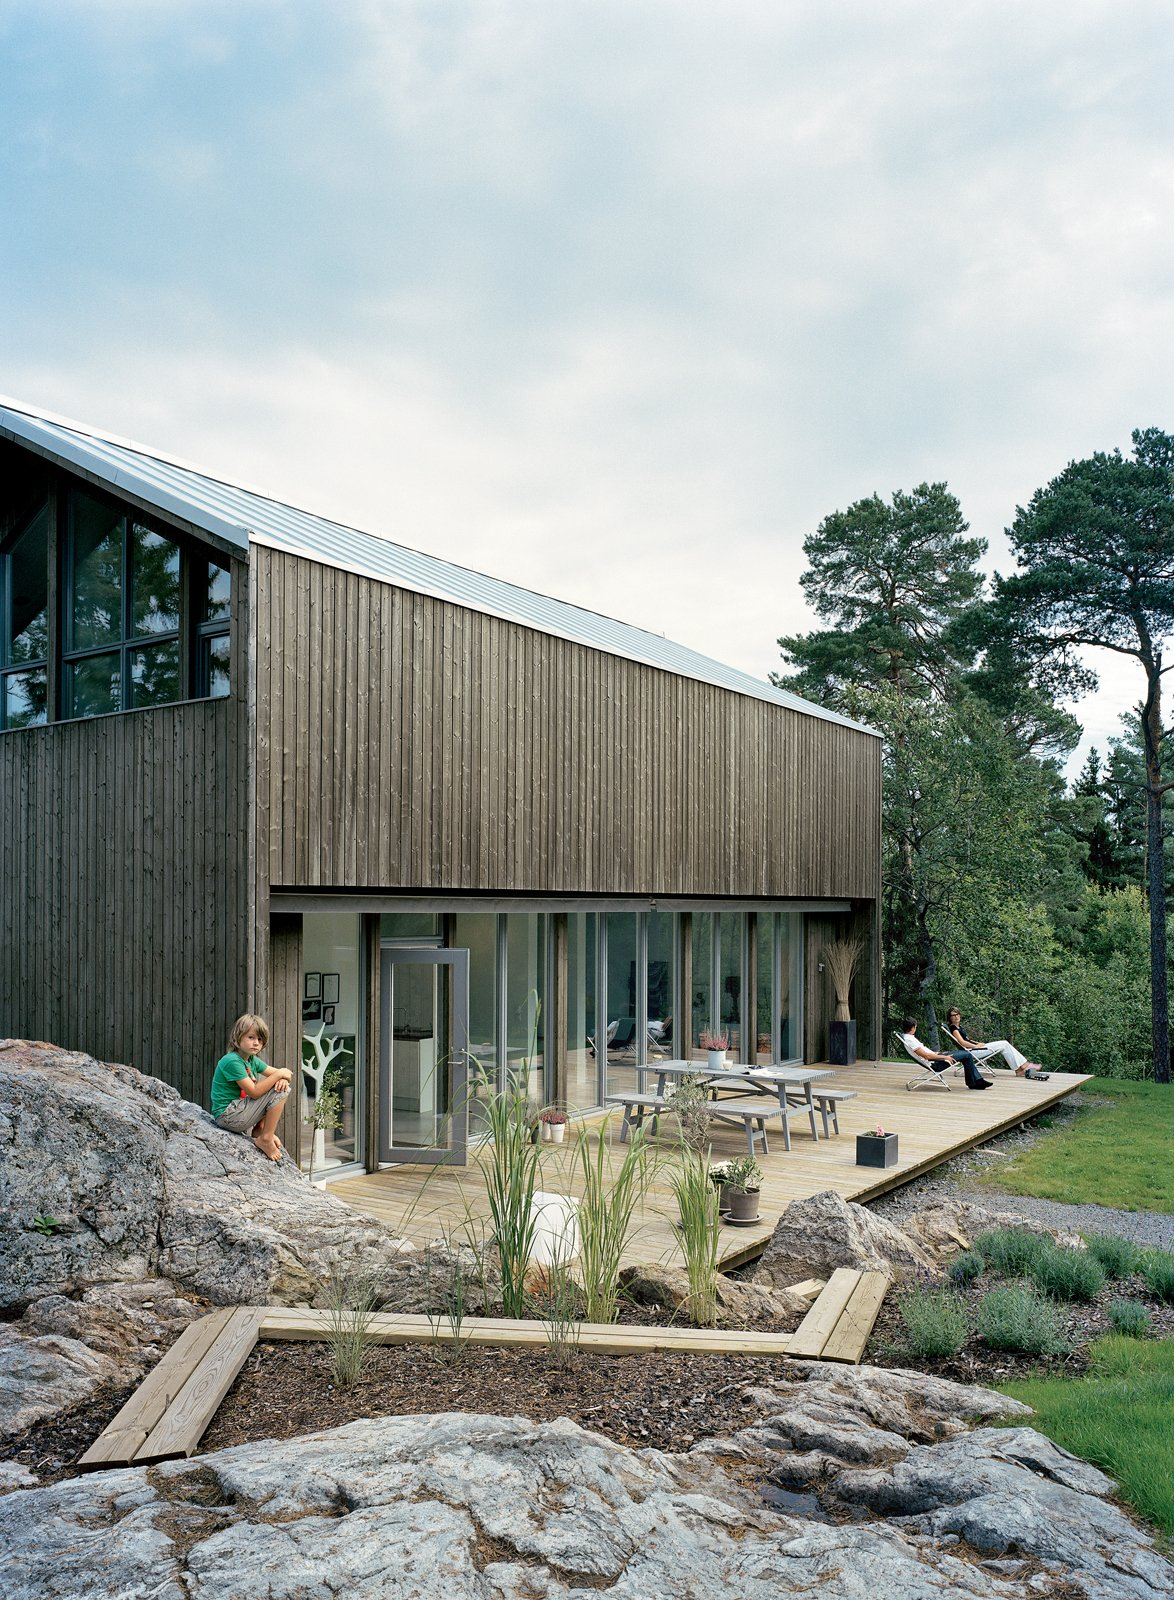 Outdoor, Wood Patio, Porch, Deck, Back Yard, Large Patio, Porch, Deck, and Grass On the wide deck, the family enjoys some peace and quiet.  Sourcing Guide for Modern Prefab Companies in Europe by Kelsey Keith from Sum of Its Parts